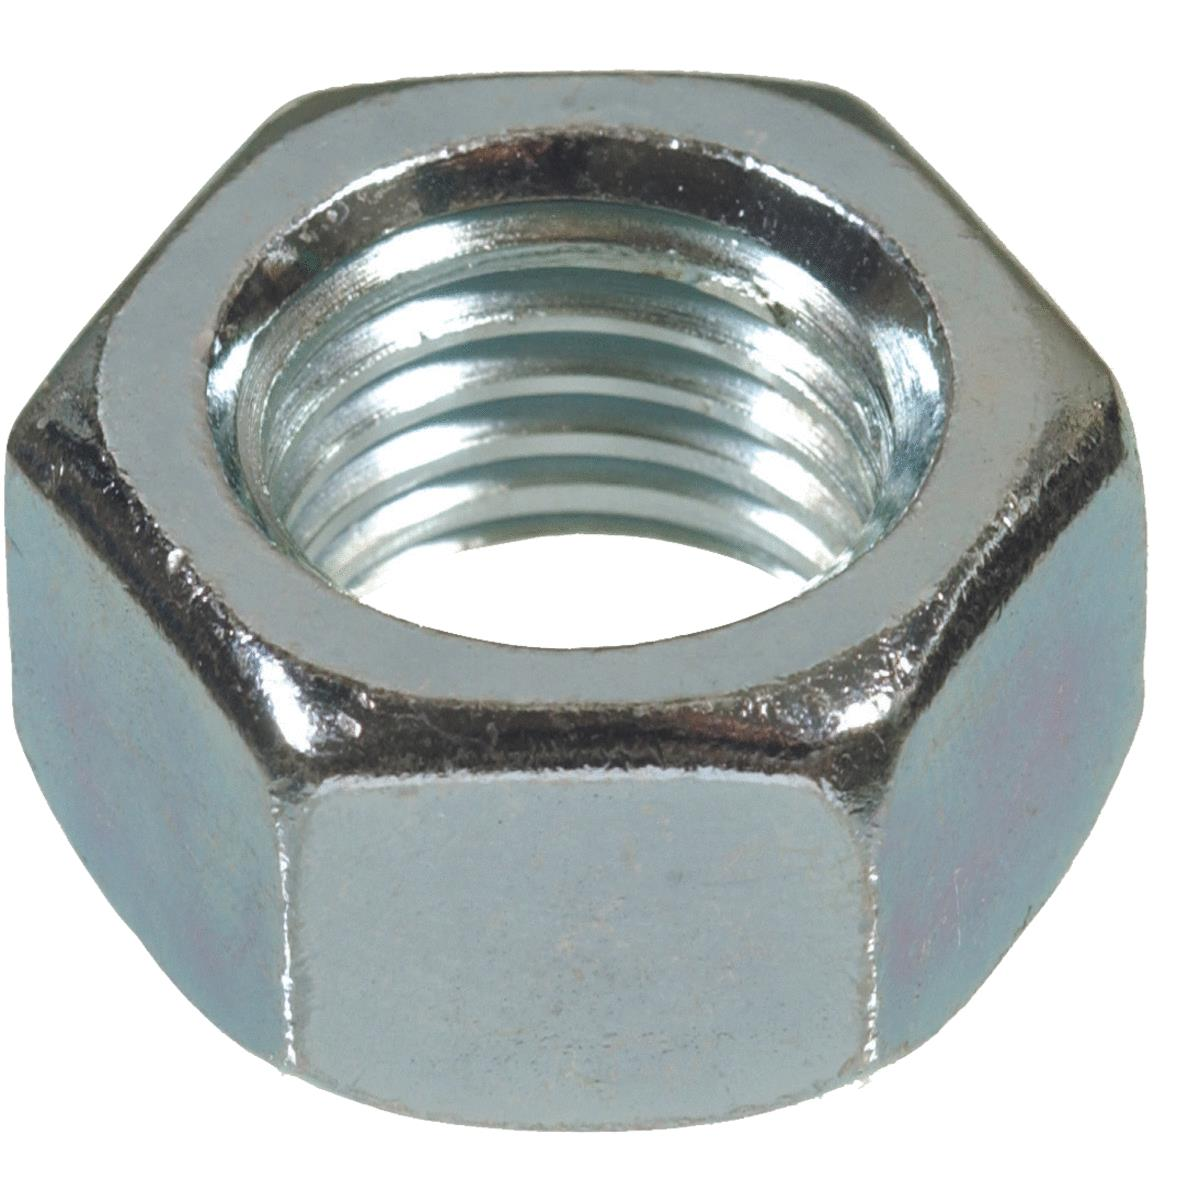 """1//4 20 x 13/"""" INCH GRADE 5 ZINC COATED CARRIAGE BOLTS EIGHT FOR $11.99-13/"""" long"""